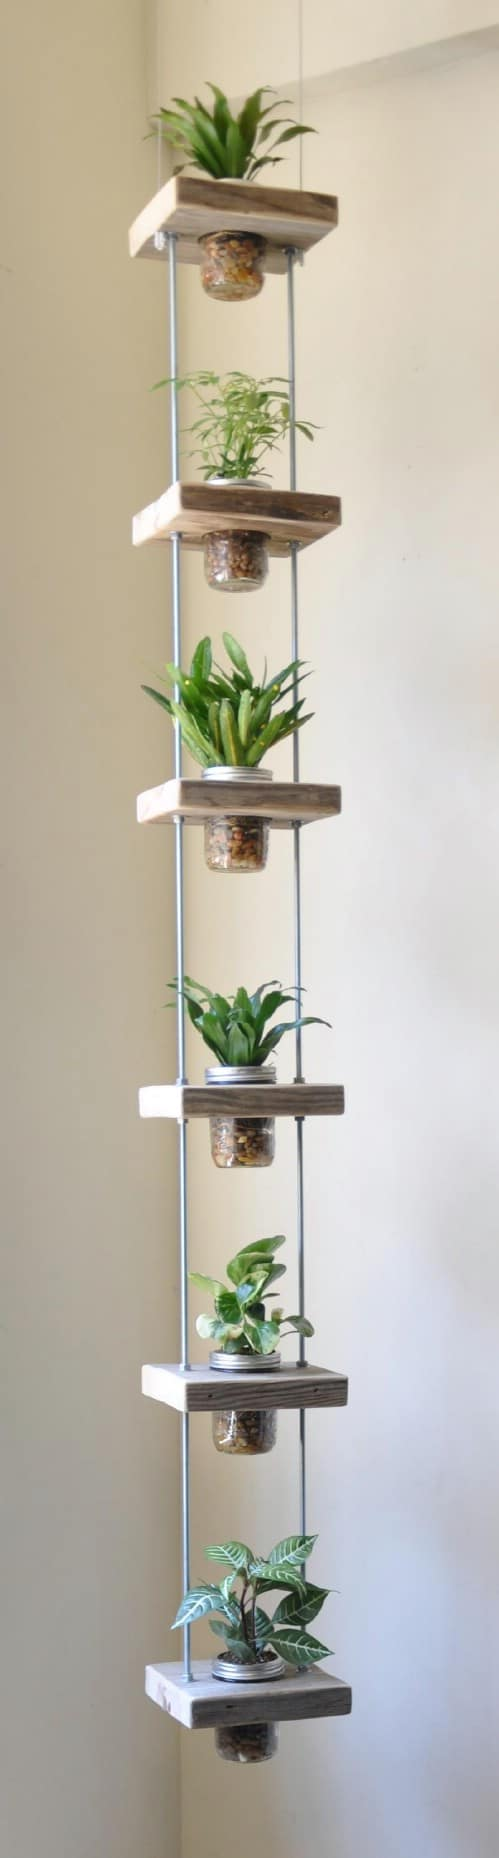 Medium Of Vertical Herb Garden Plans